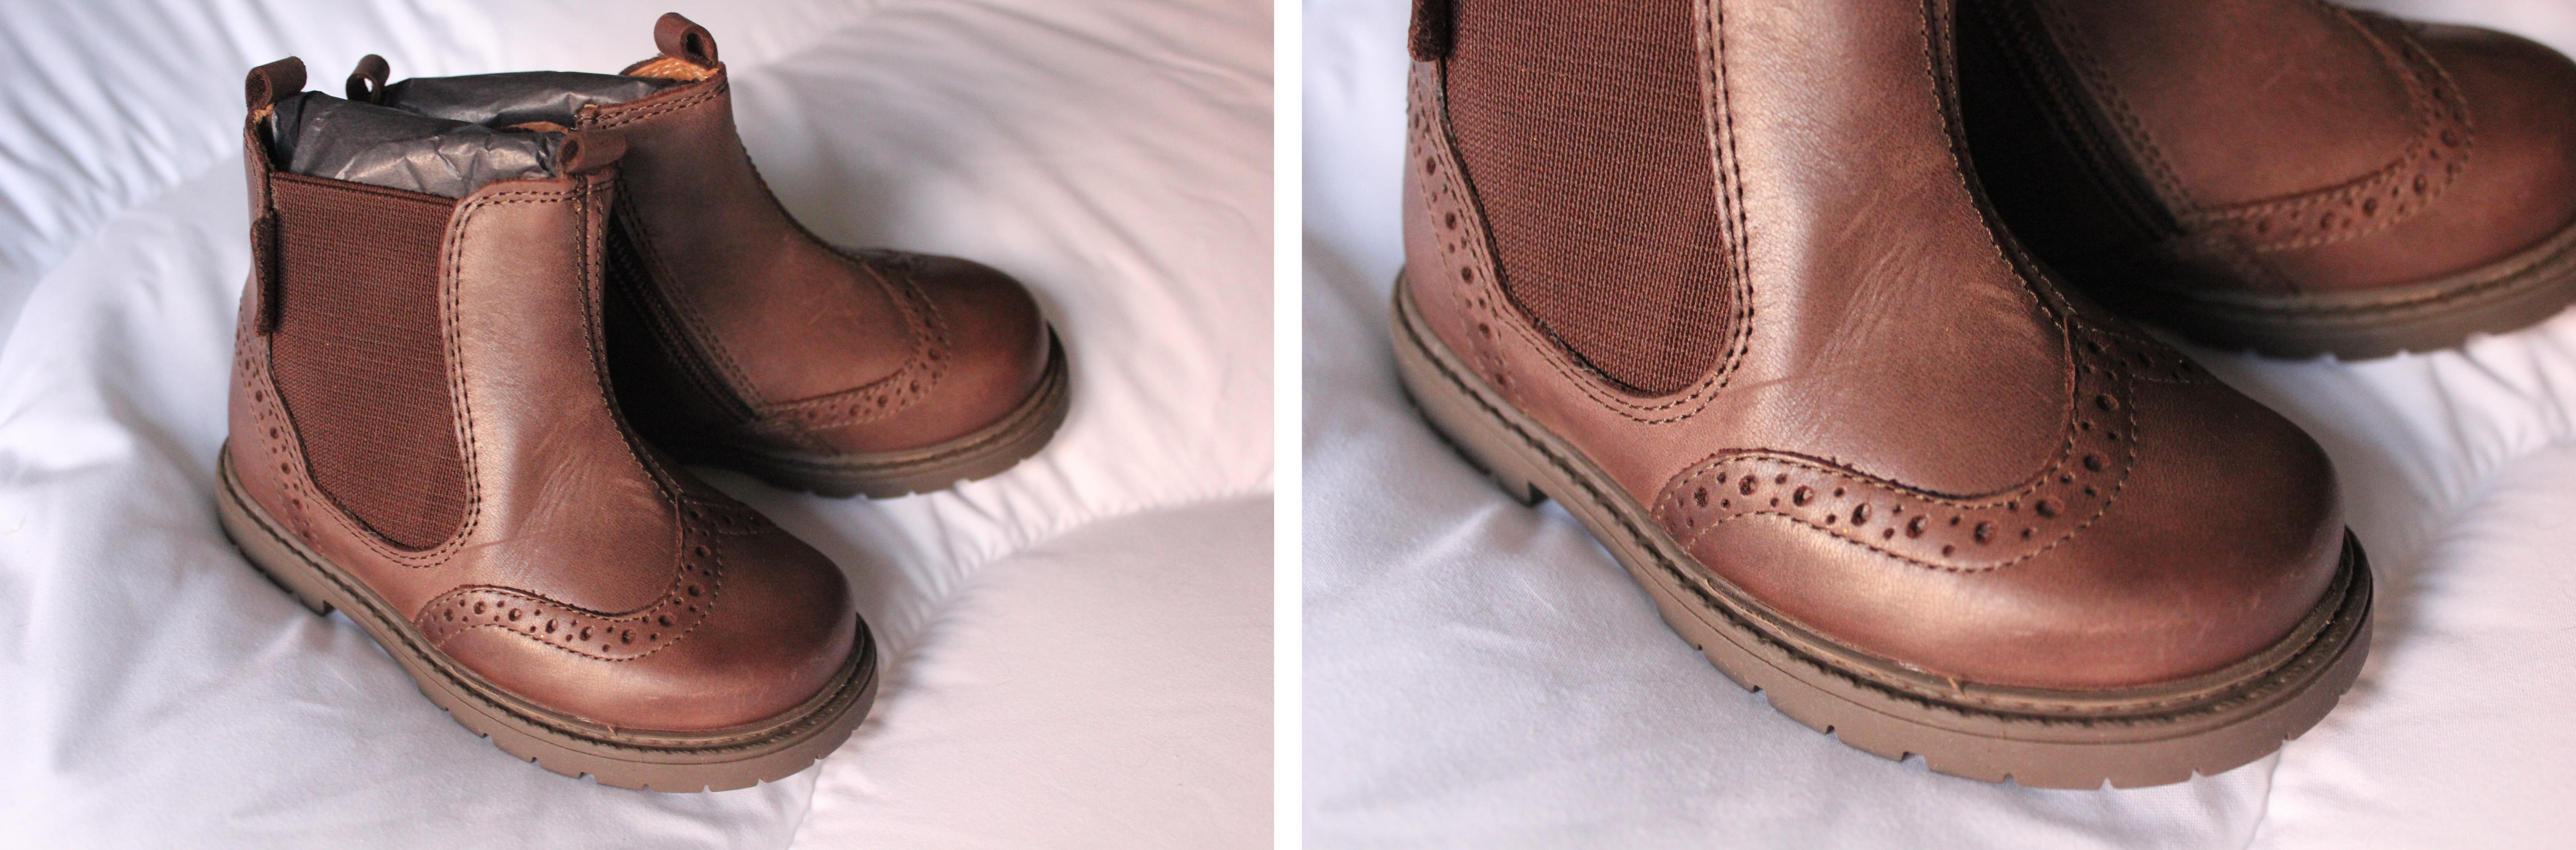 Tuesday Shoesday ~ little boots for the little 'uns |